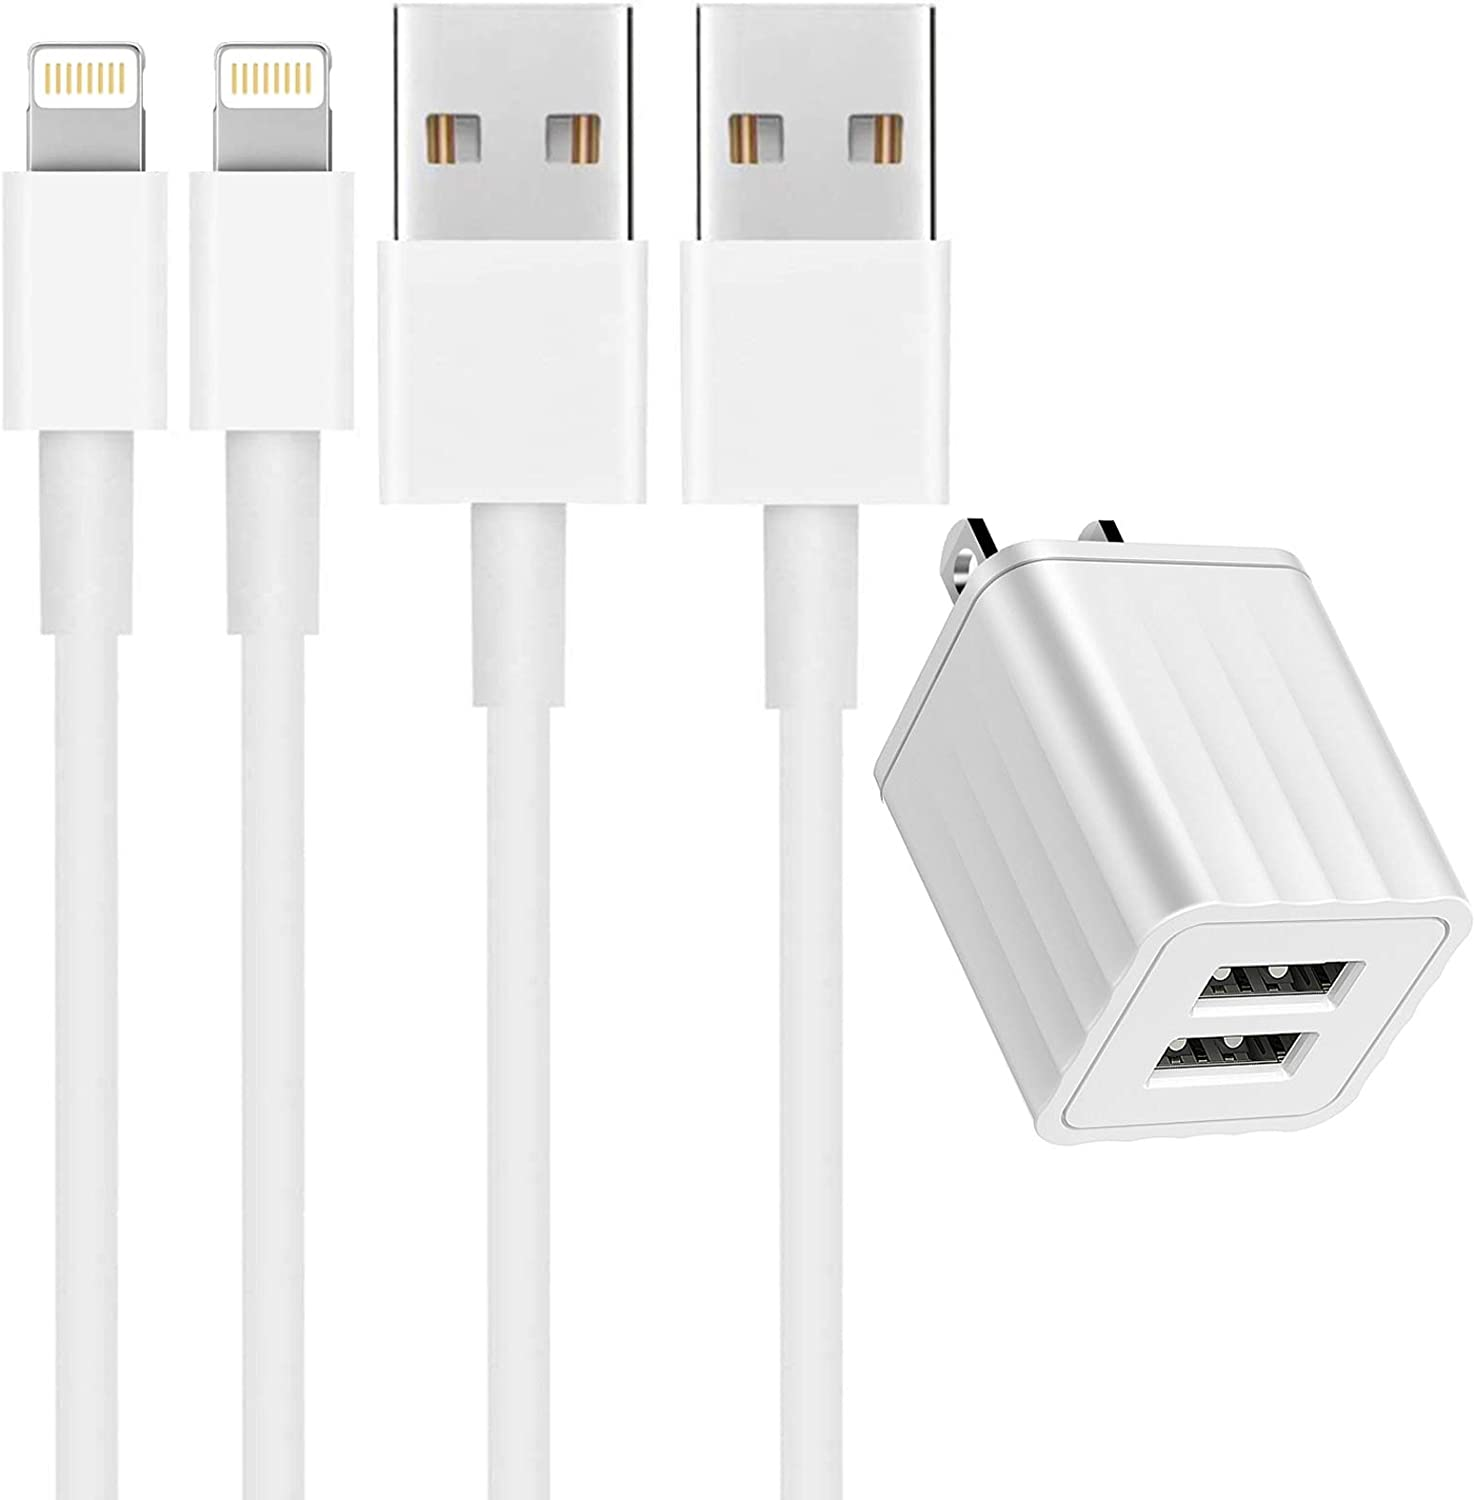 [Apple MFi Certified] iPhone Charger, 2 Pack 6FT Lightning to USB Fast Charging Data Sync Transfer Cord & Dual Port USB Wall Charger(UL Listed)Plug Compatible with iPhone 12/12 Pro/11/XS/XR/X 8 7/iPad